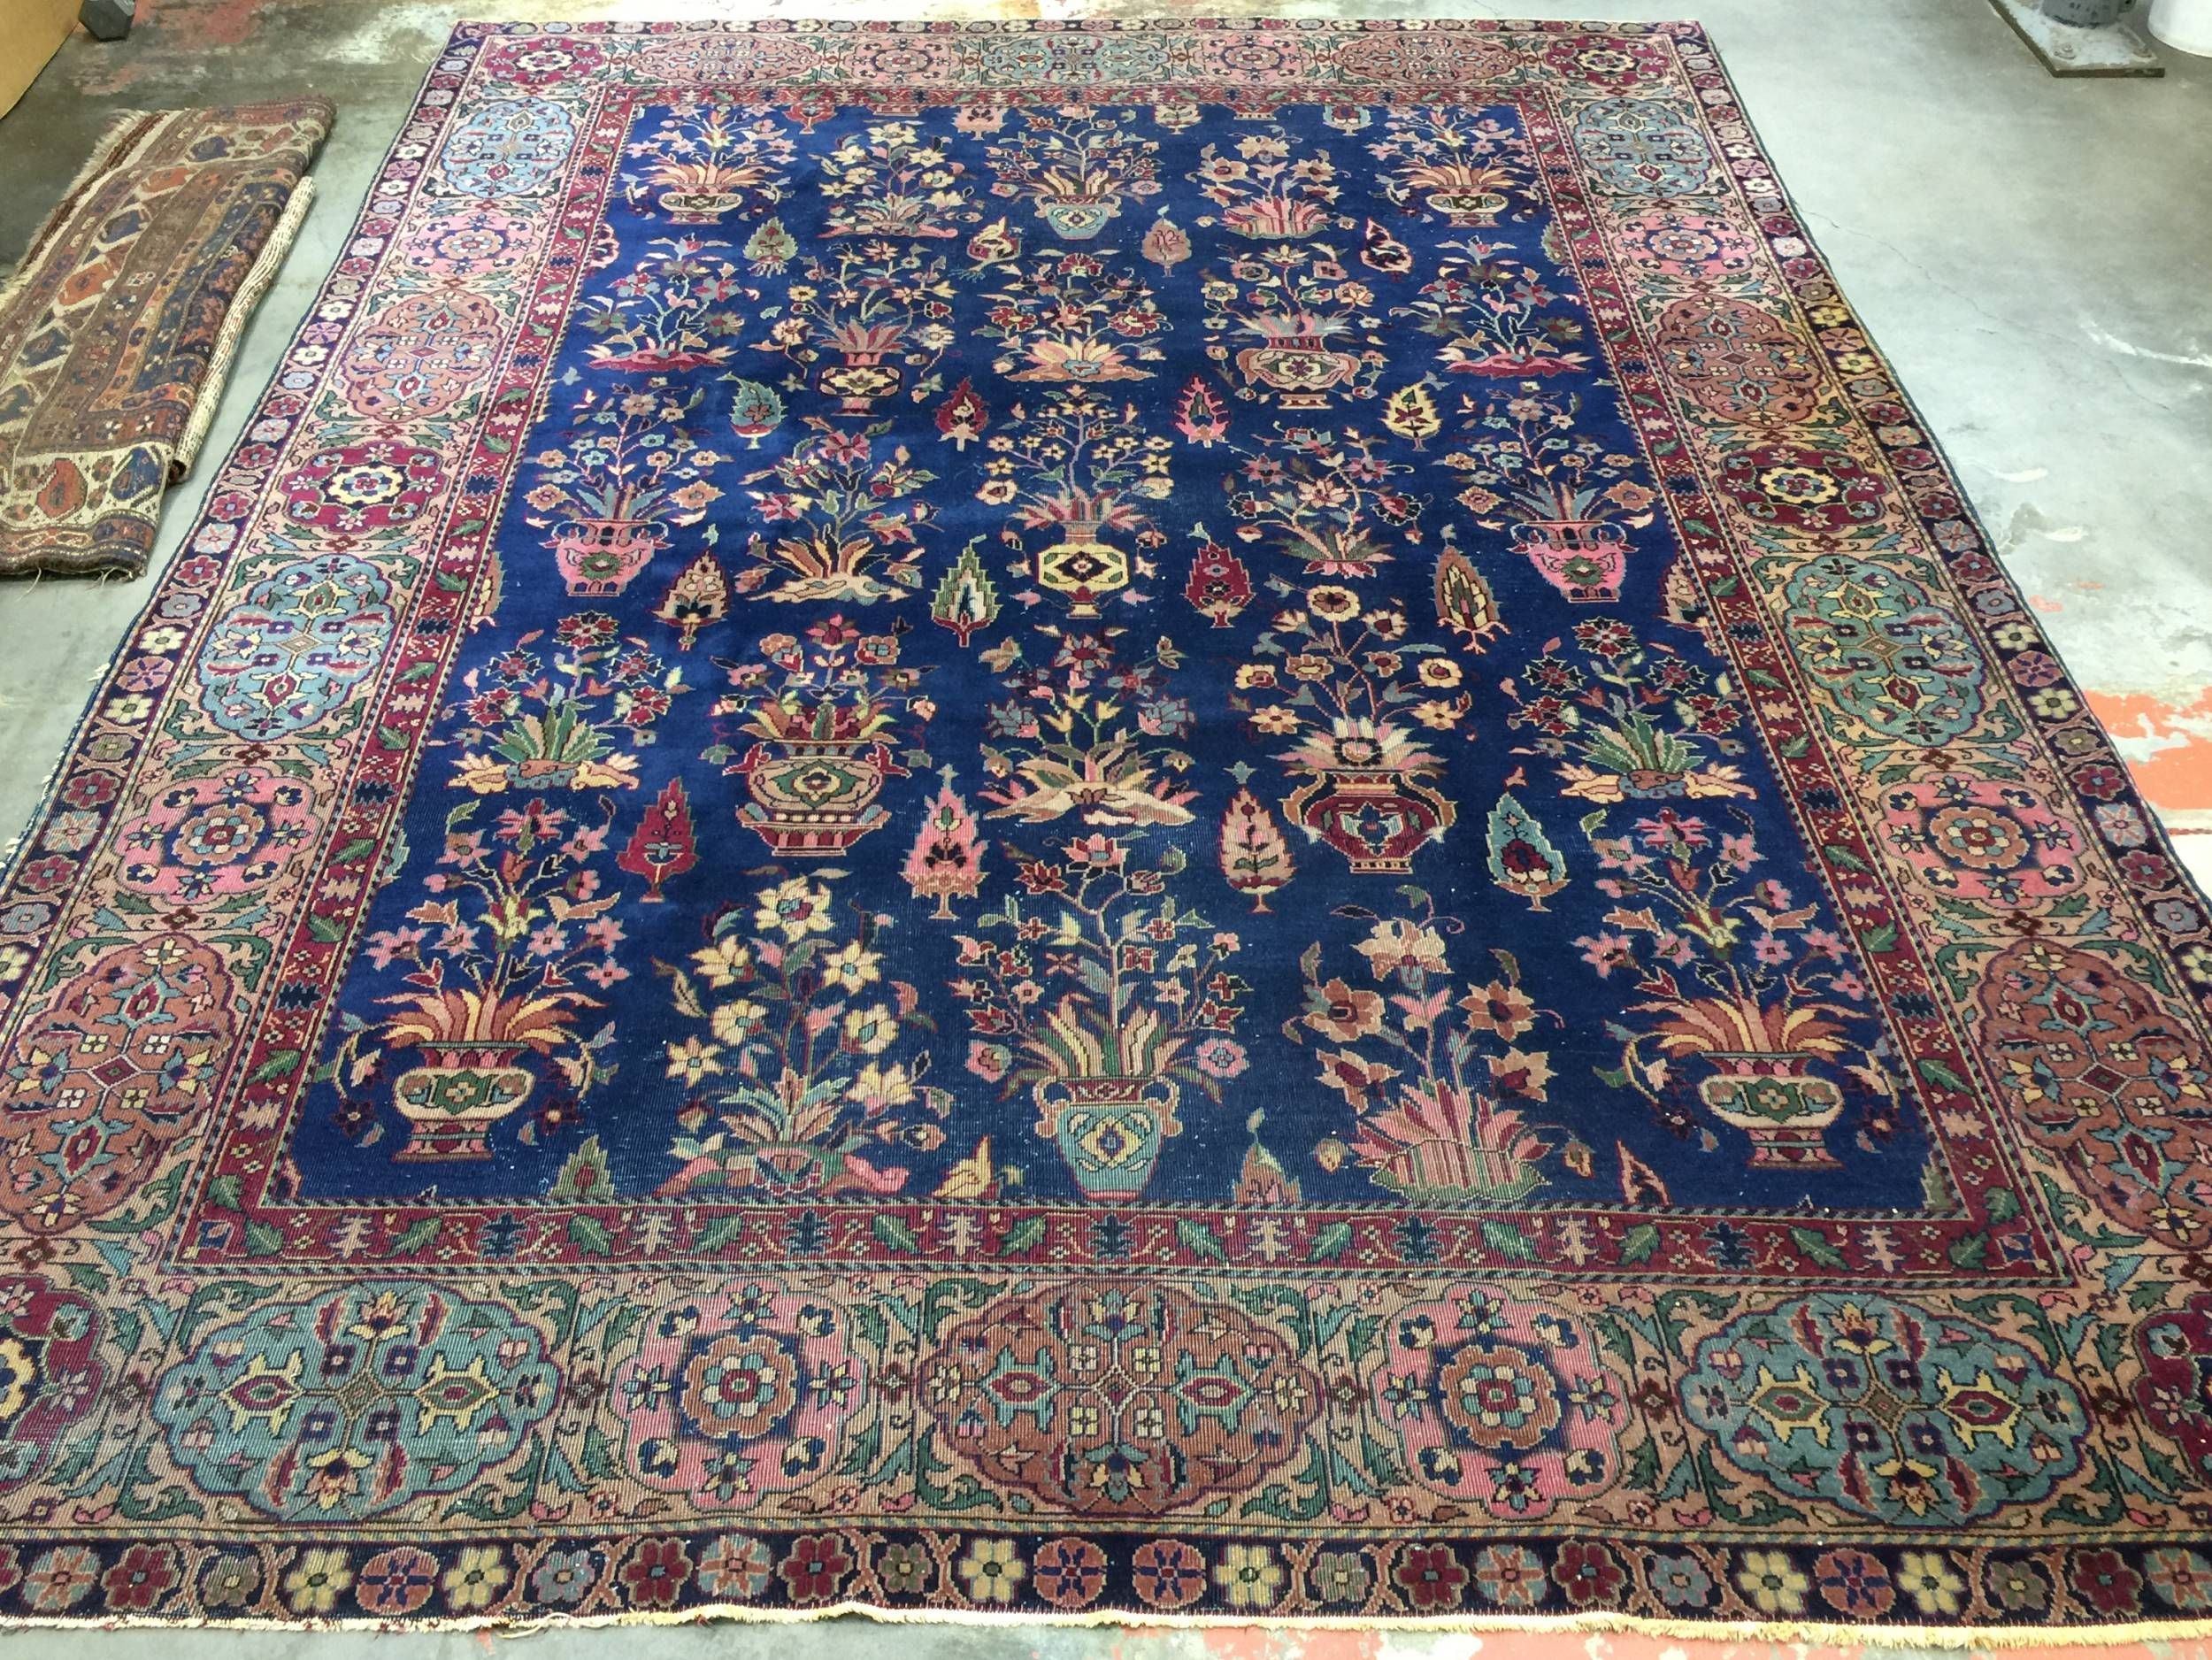 Vintage Turkish Rug 9x12 Blue Floral With Images Vintage Turkish Rugs Blue Oriental Rug Turkish Rug